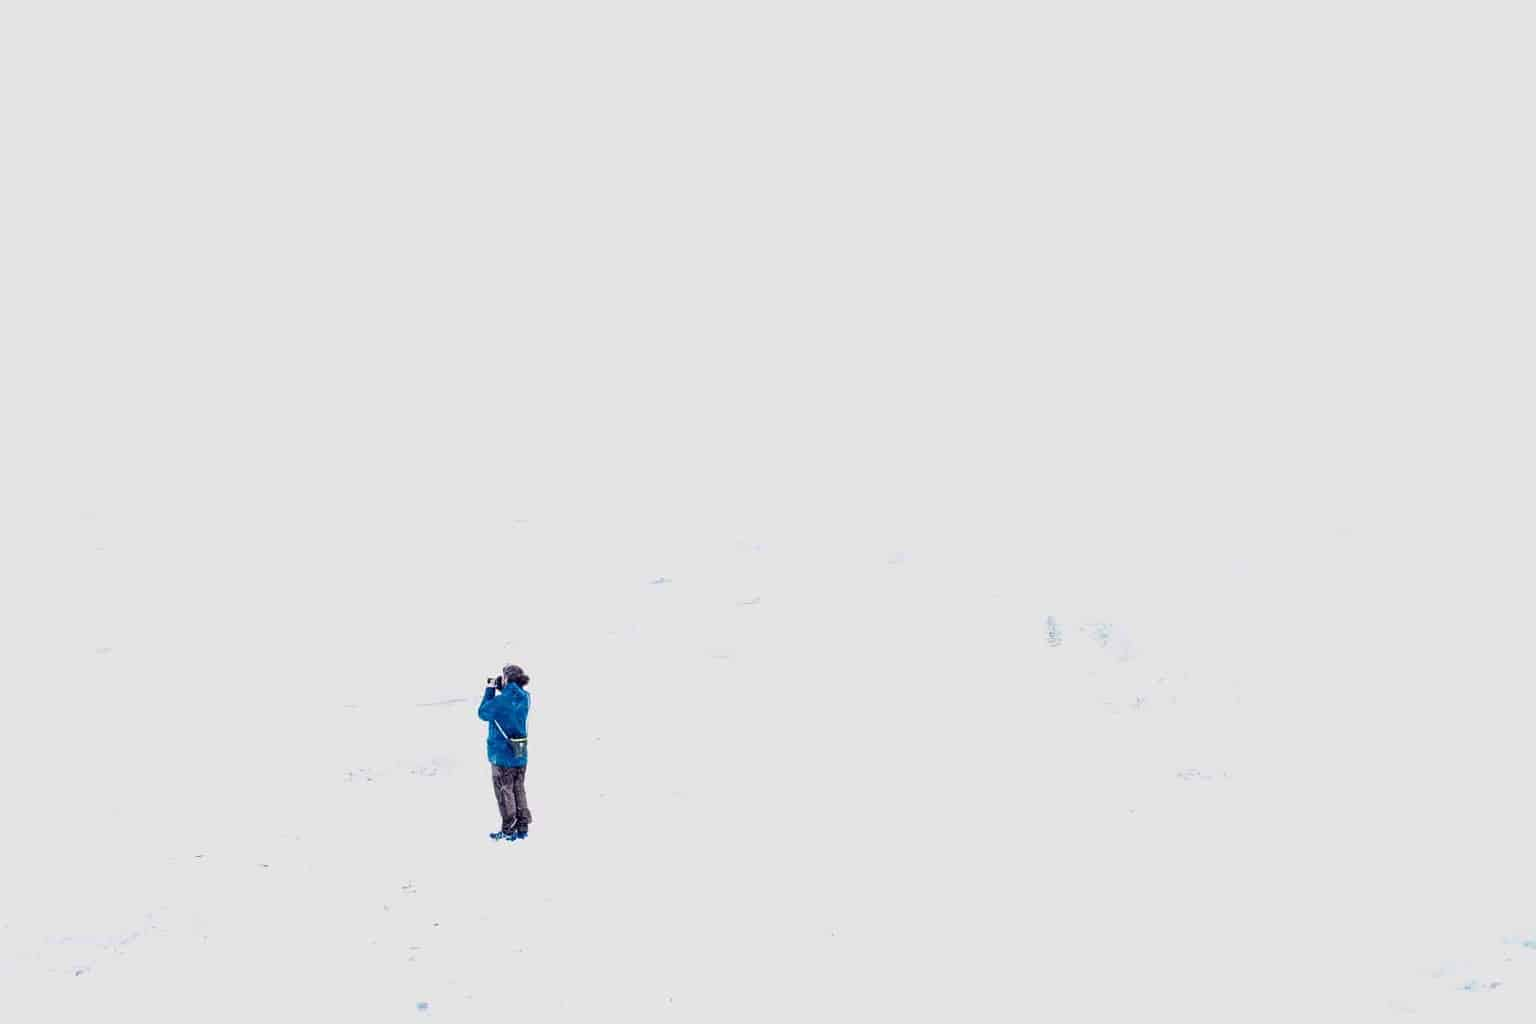 Me on the greenland ice